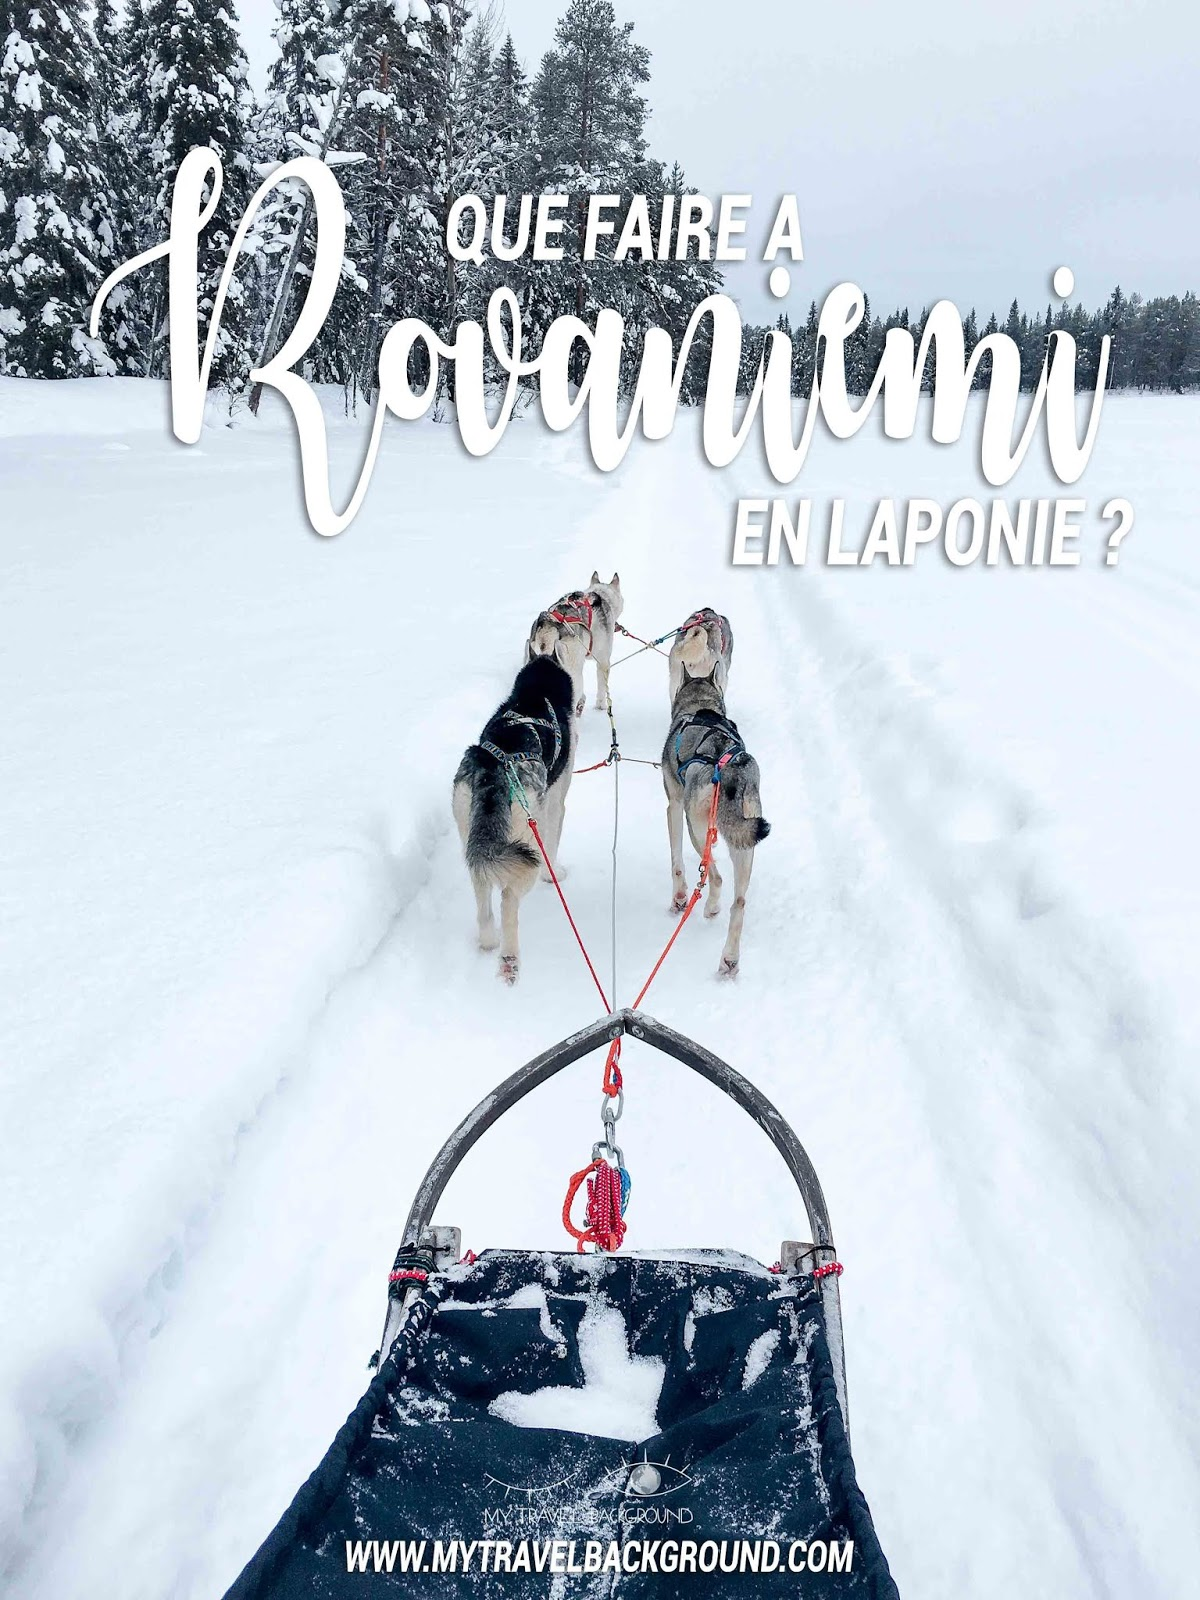 My Travel Background : Que faire à Rovaniemi en Laponie ?